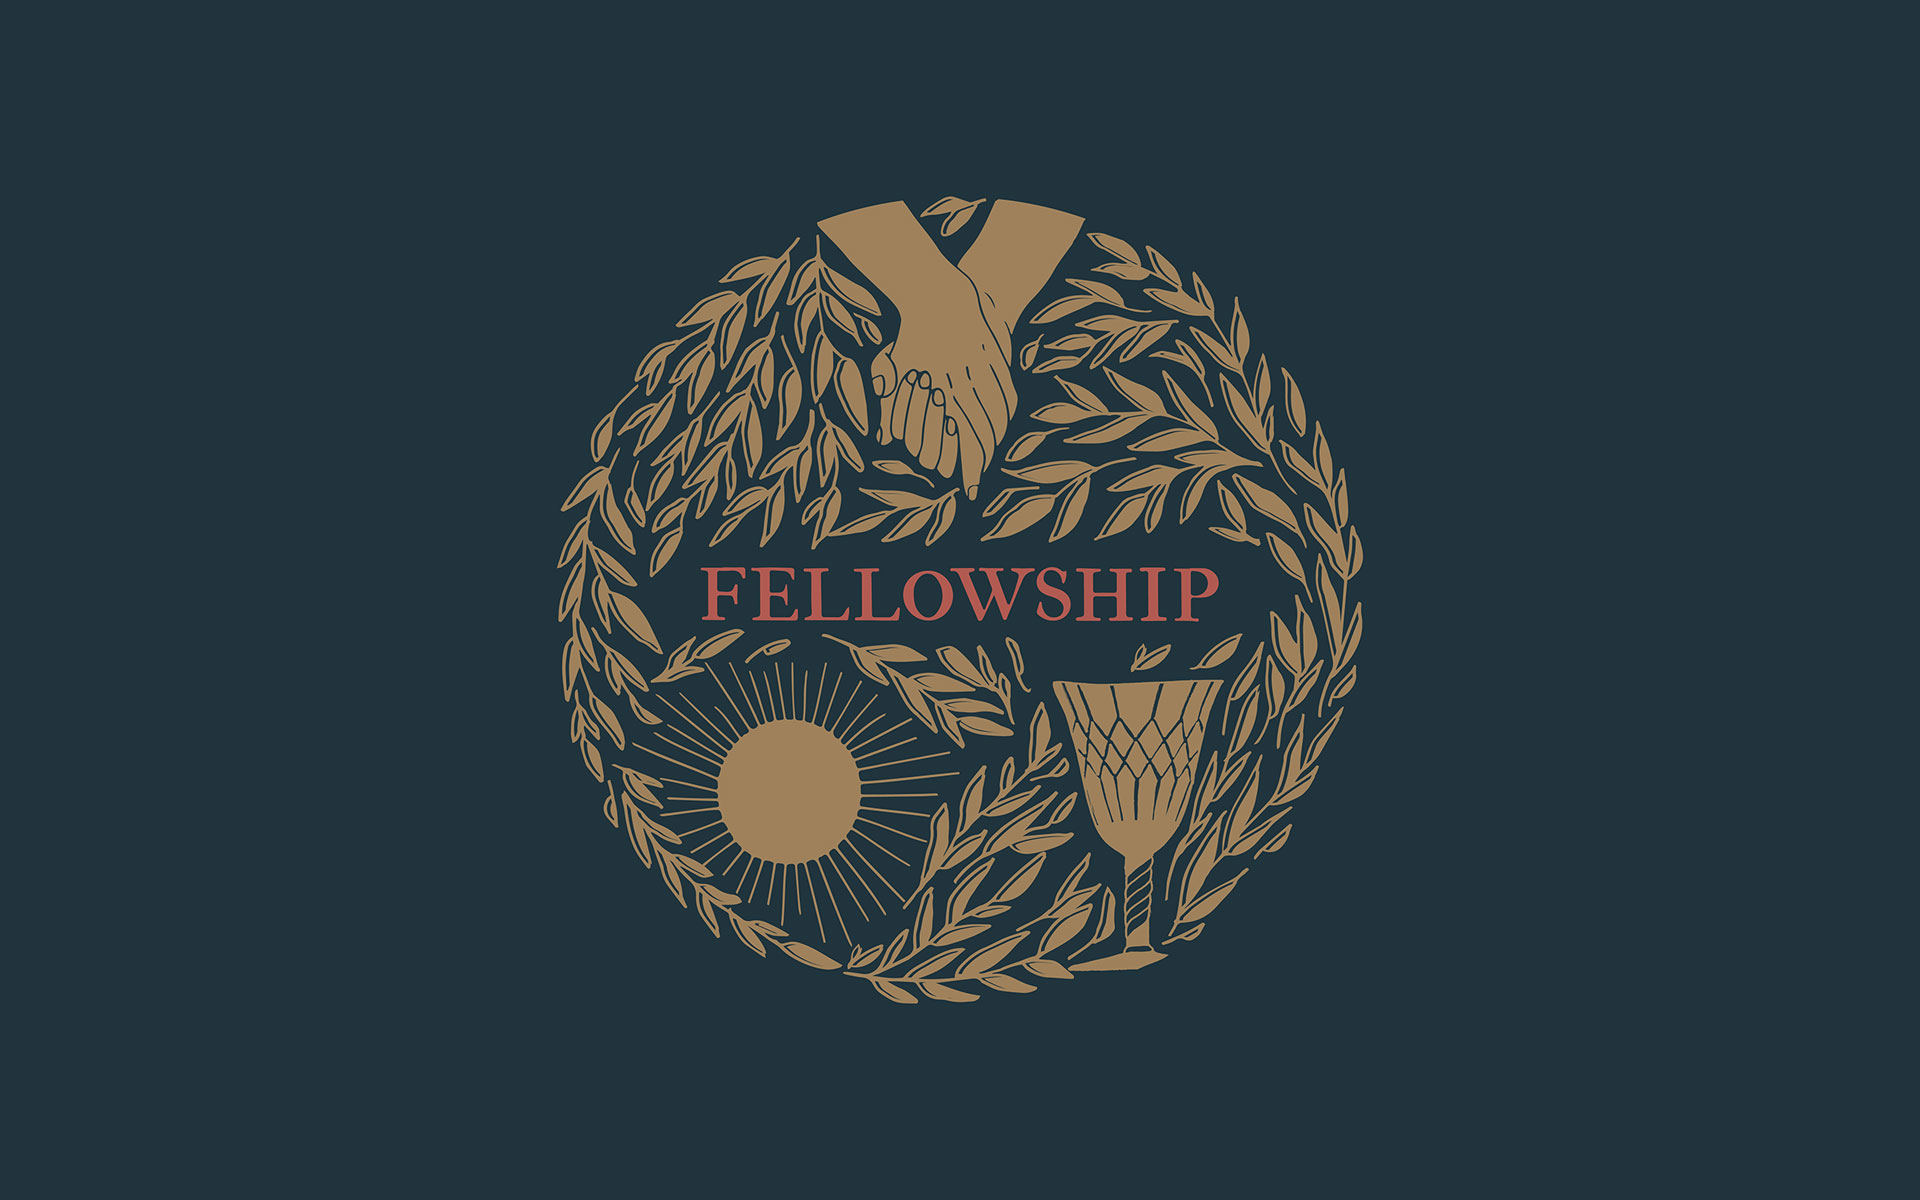 Fellowship is with the Father & Son